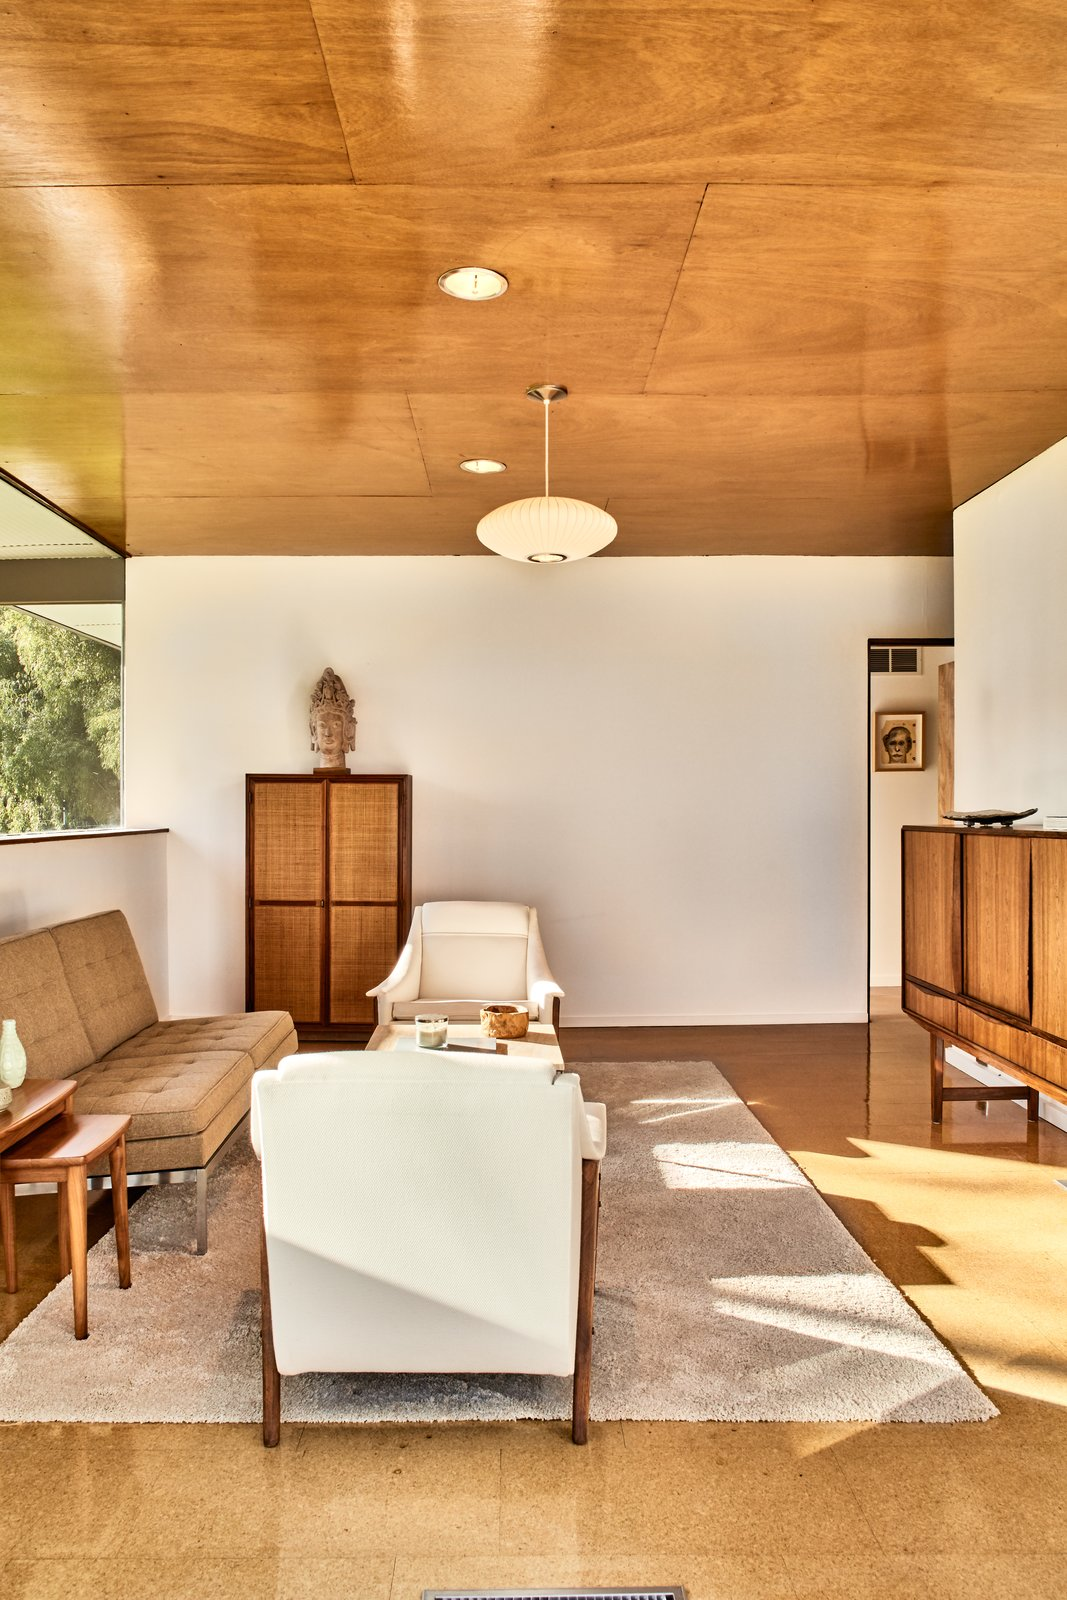 Photo 10 of 13 in The Stunningly Restored Hassrick Residence by Richard Neutra Hits the Market at $2.2M